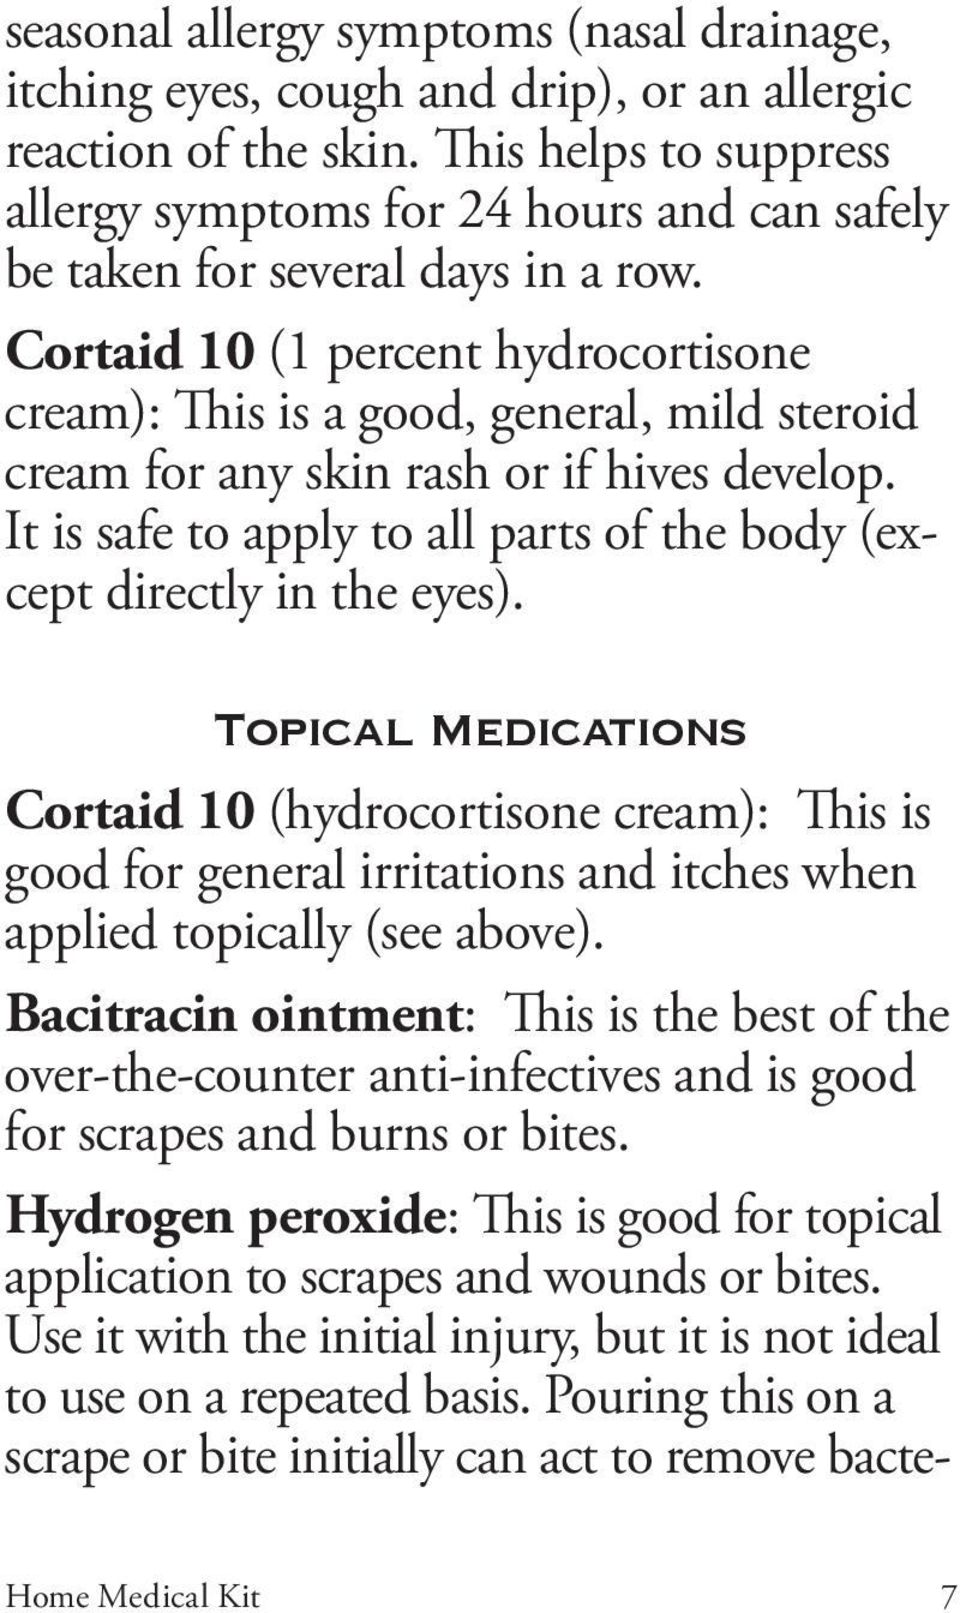 Cortaid 10 (1 percent hydrocortisone cream): This is a good, general, mild steroid cream for any skin rash or if hives develop.